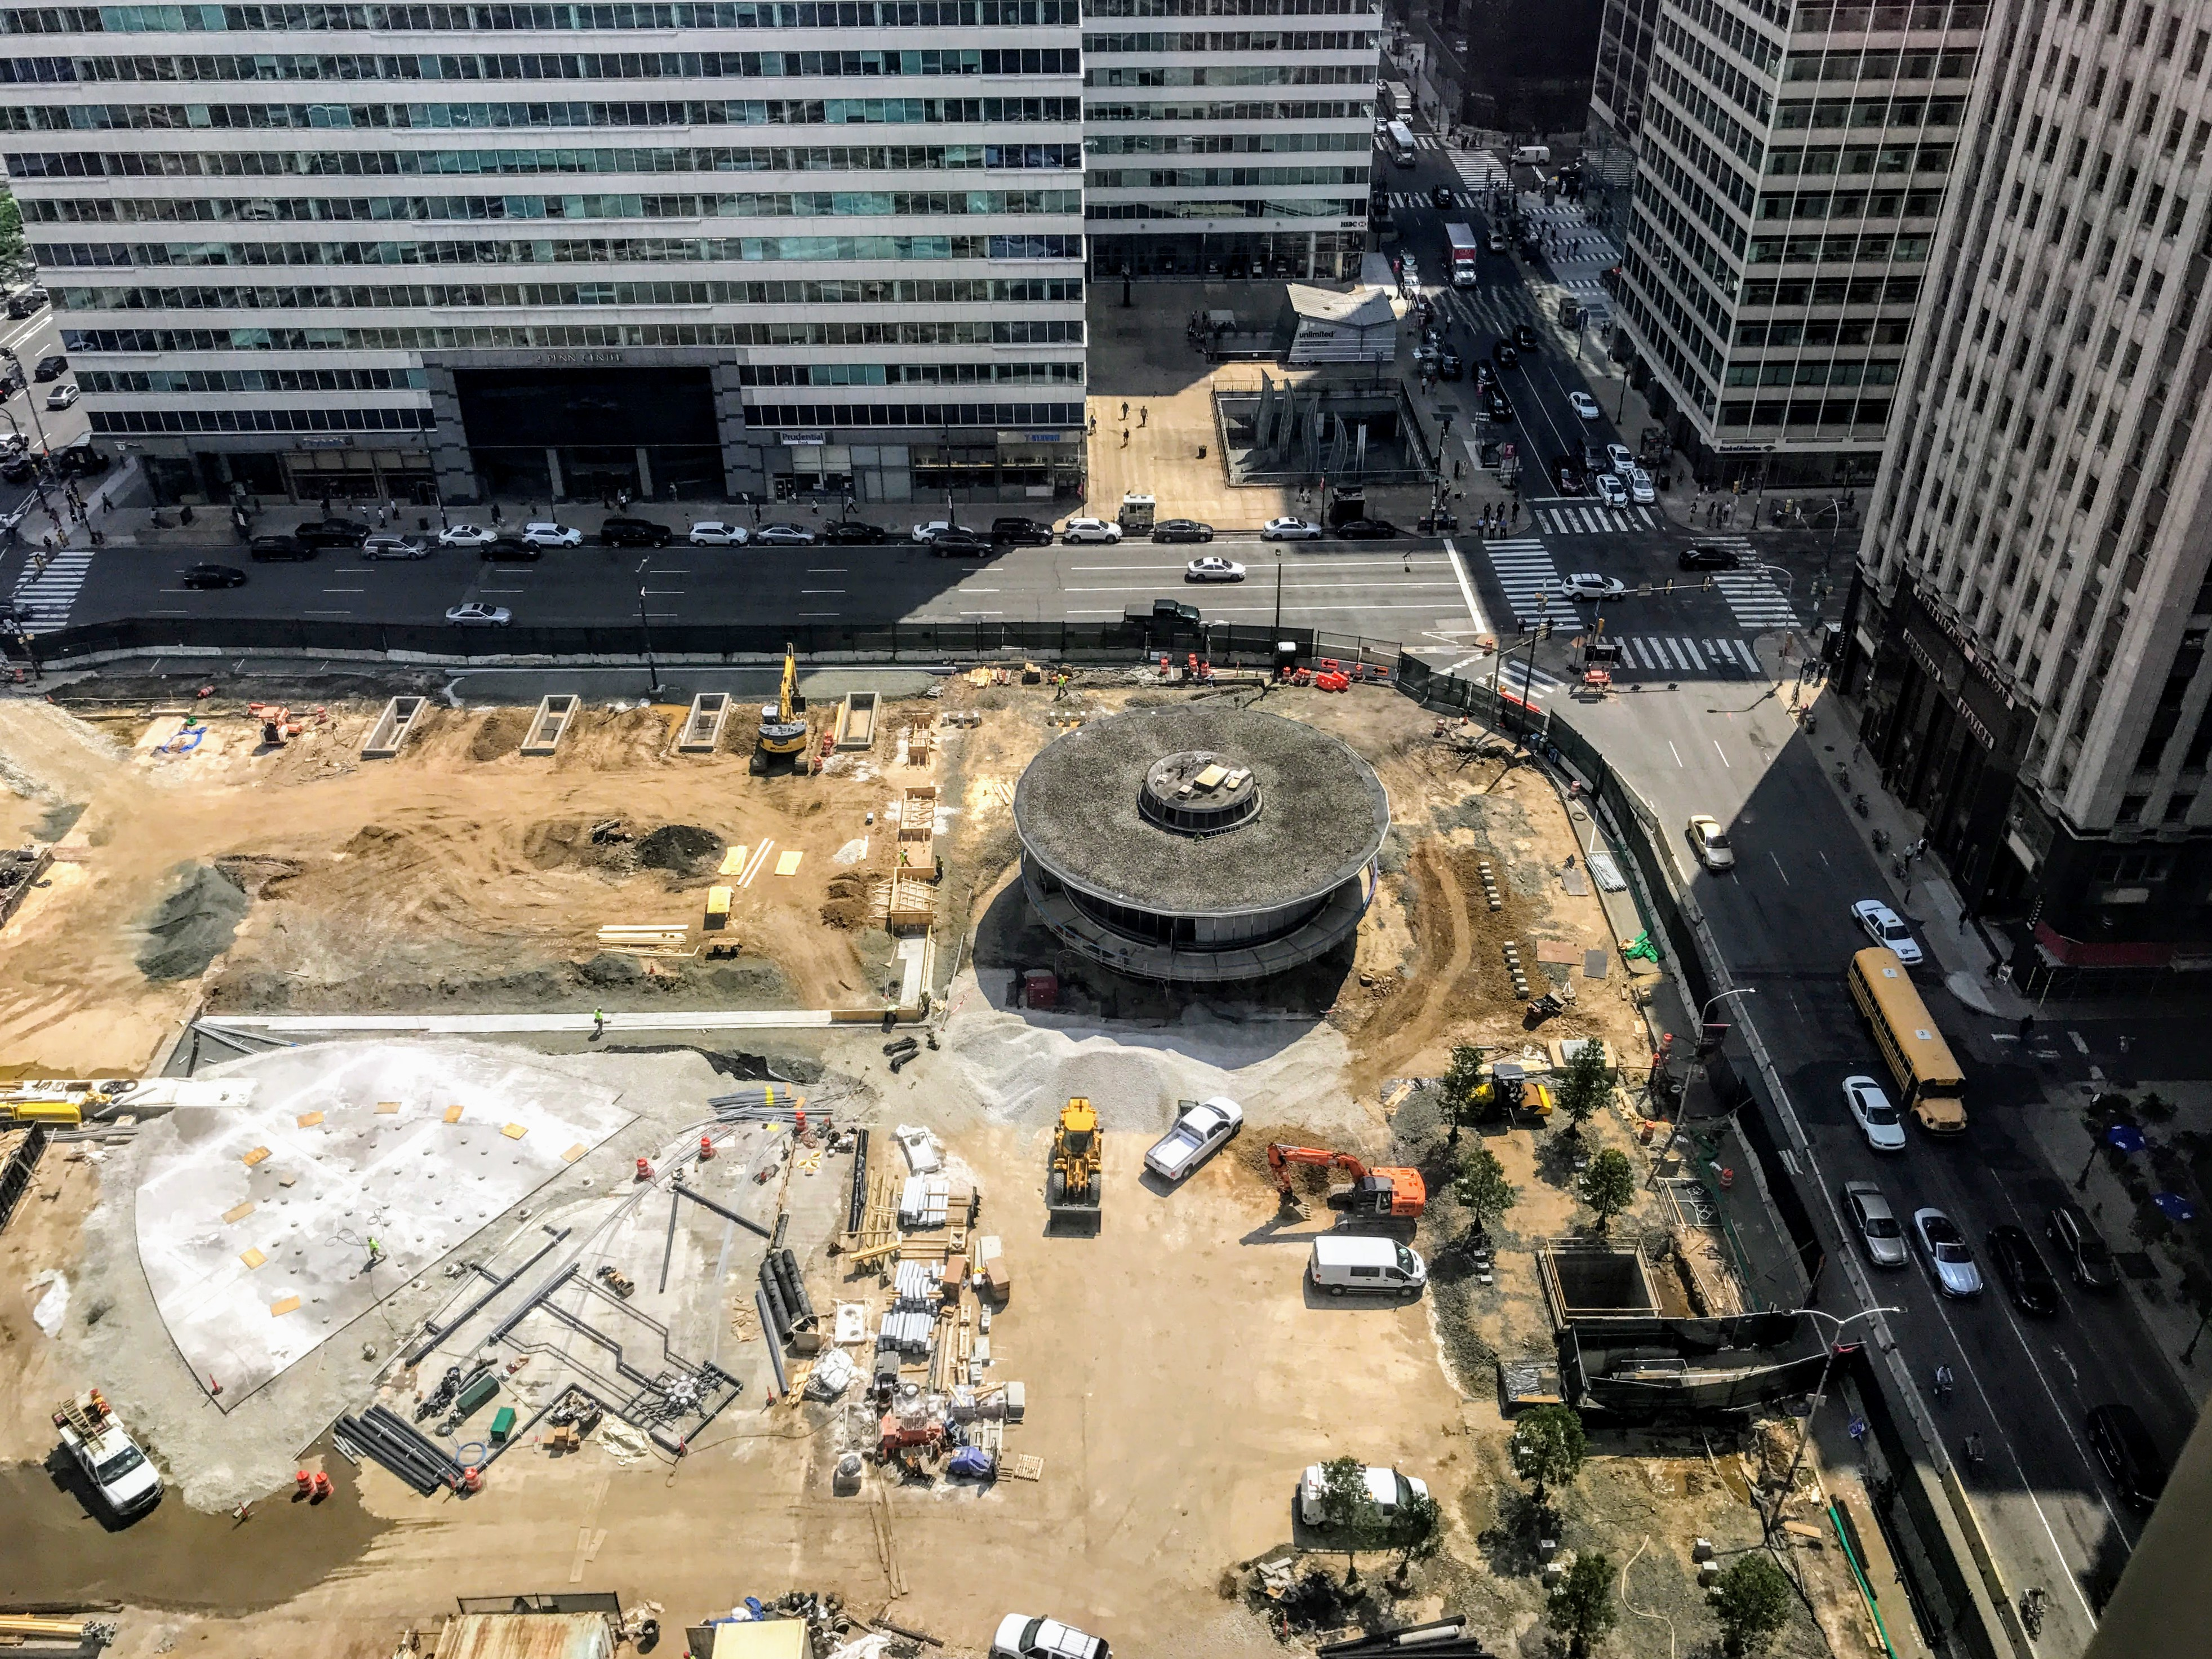 An aerial view of LOVE Park under construction in Philadelphia.